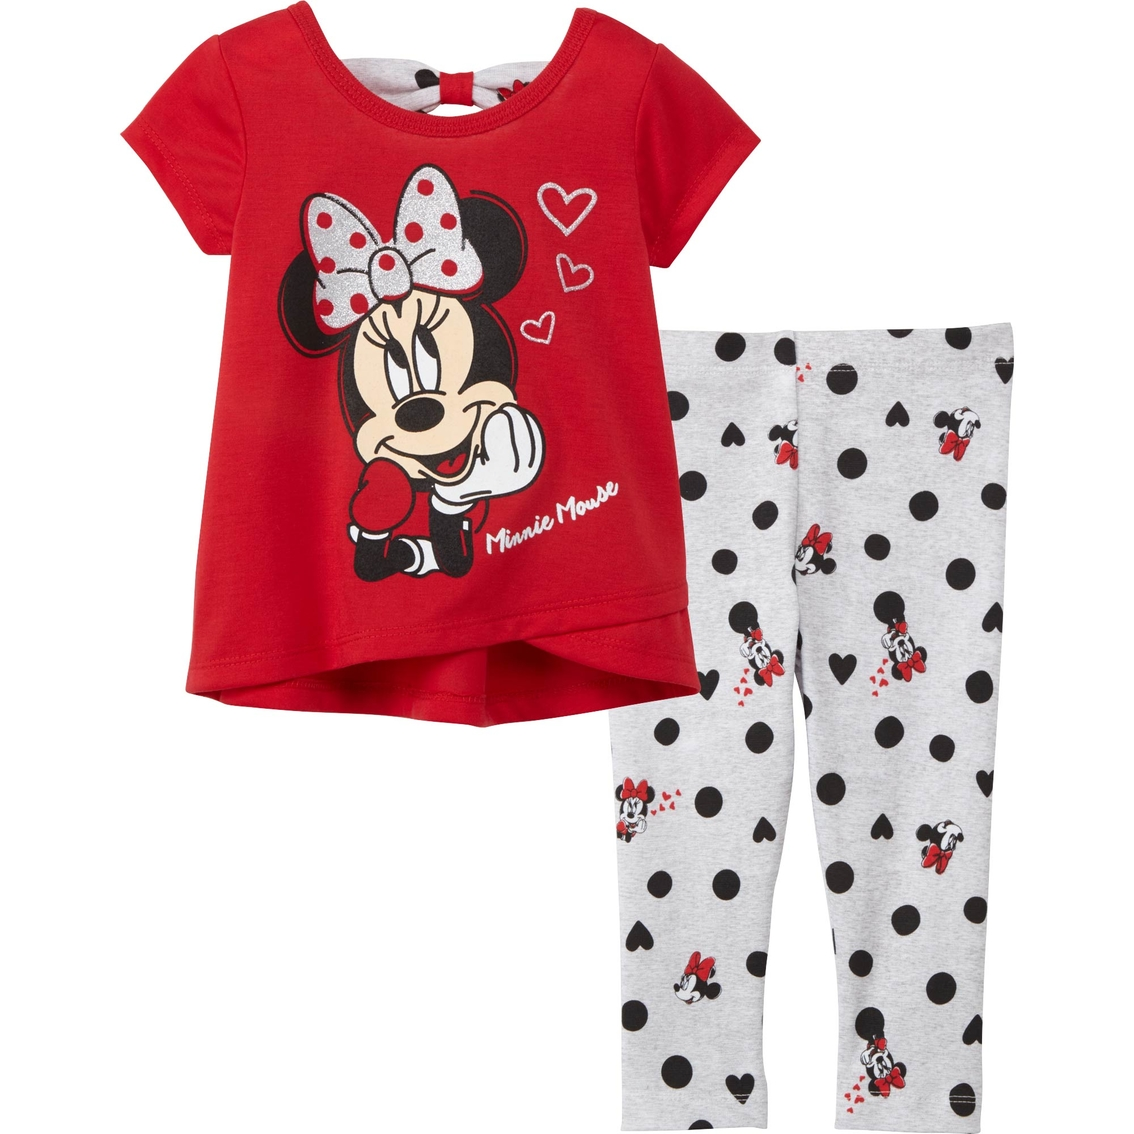 2bc867fdfc550 Disney Infant Girls Minnie Mouse Shirt And Leggings Set